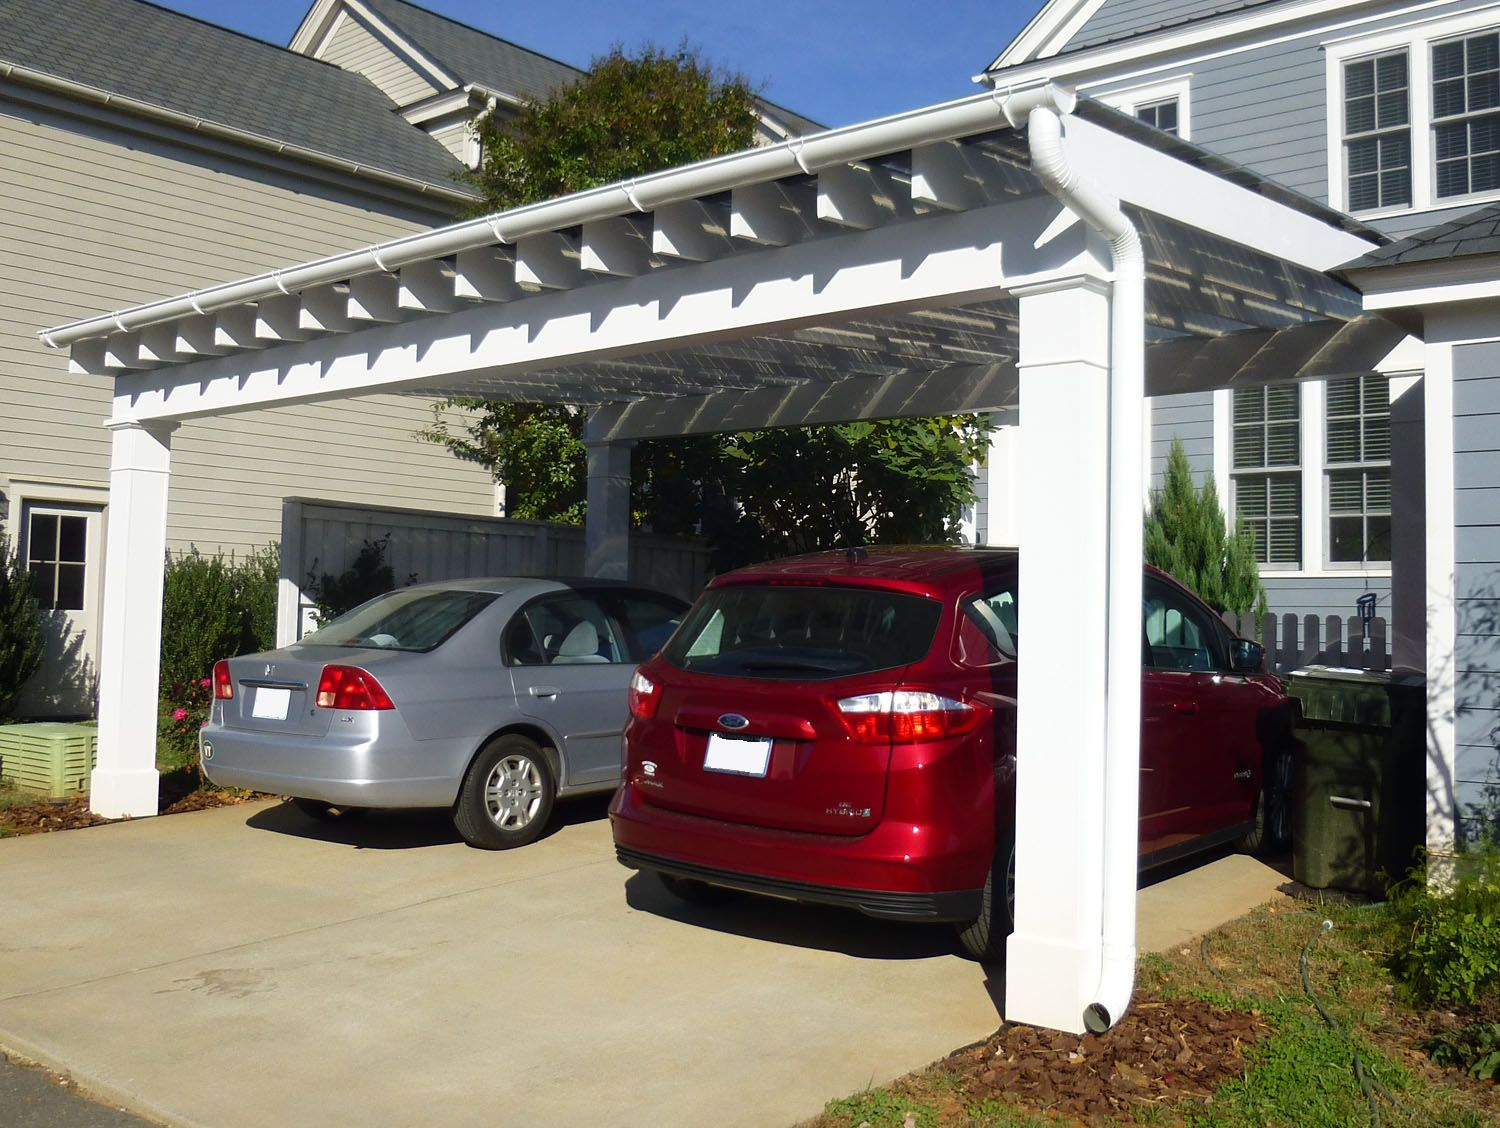 Solar carport finished and commissioned green